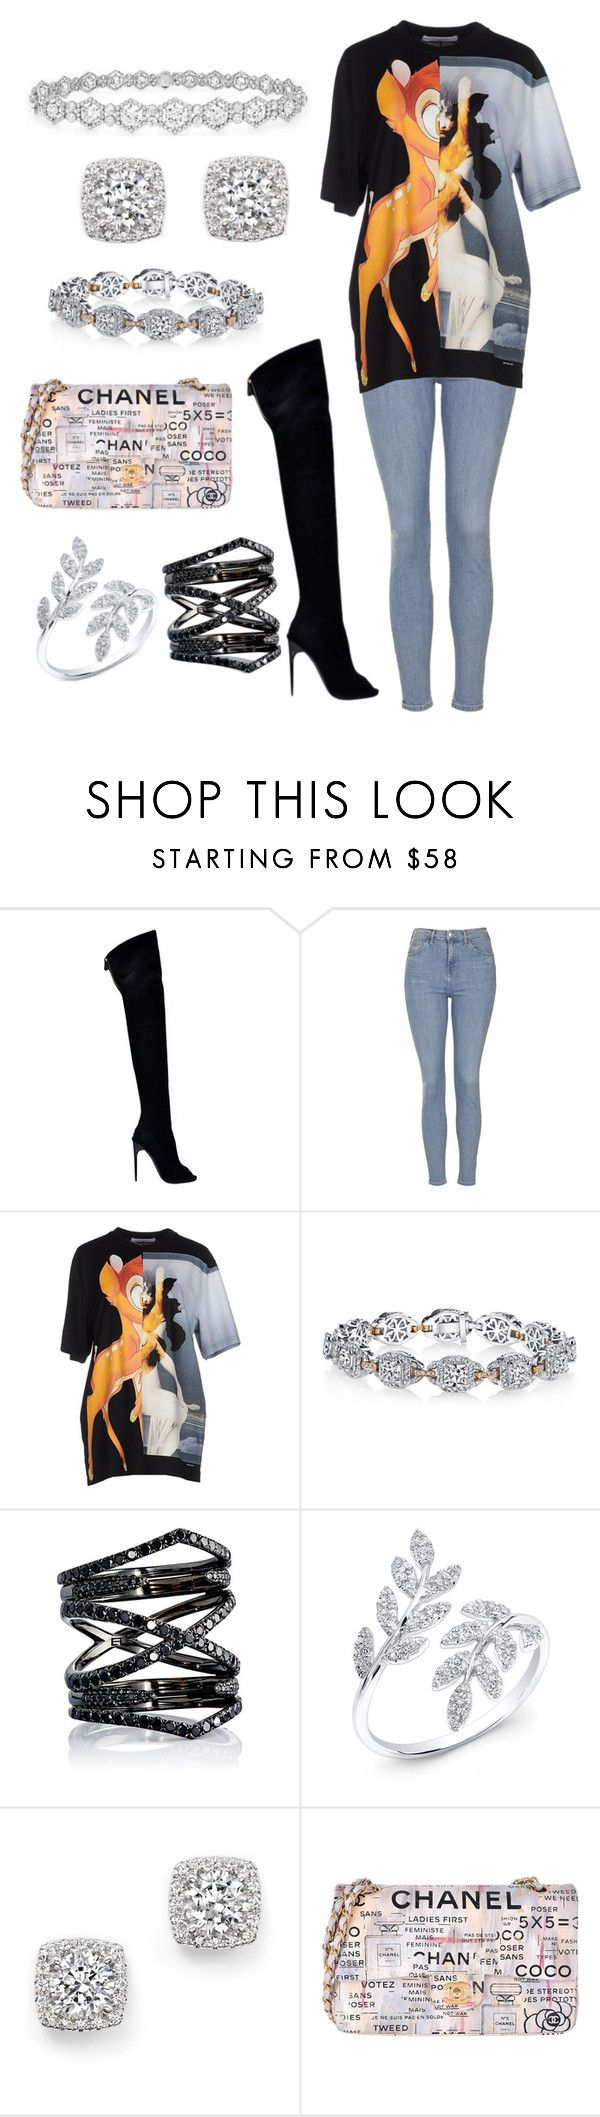 """""""Untitled #1017"""" by astarupthere ❤ liked on Polyvore featuring Tom Ford, Topshop, Givenchy, Harry Kotlar, Eva Fehren, Epoque, Bloomingdale's and Chanel"""